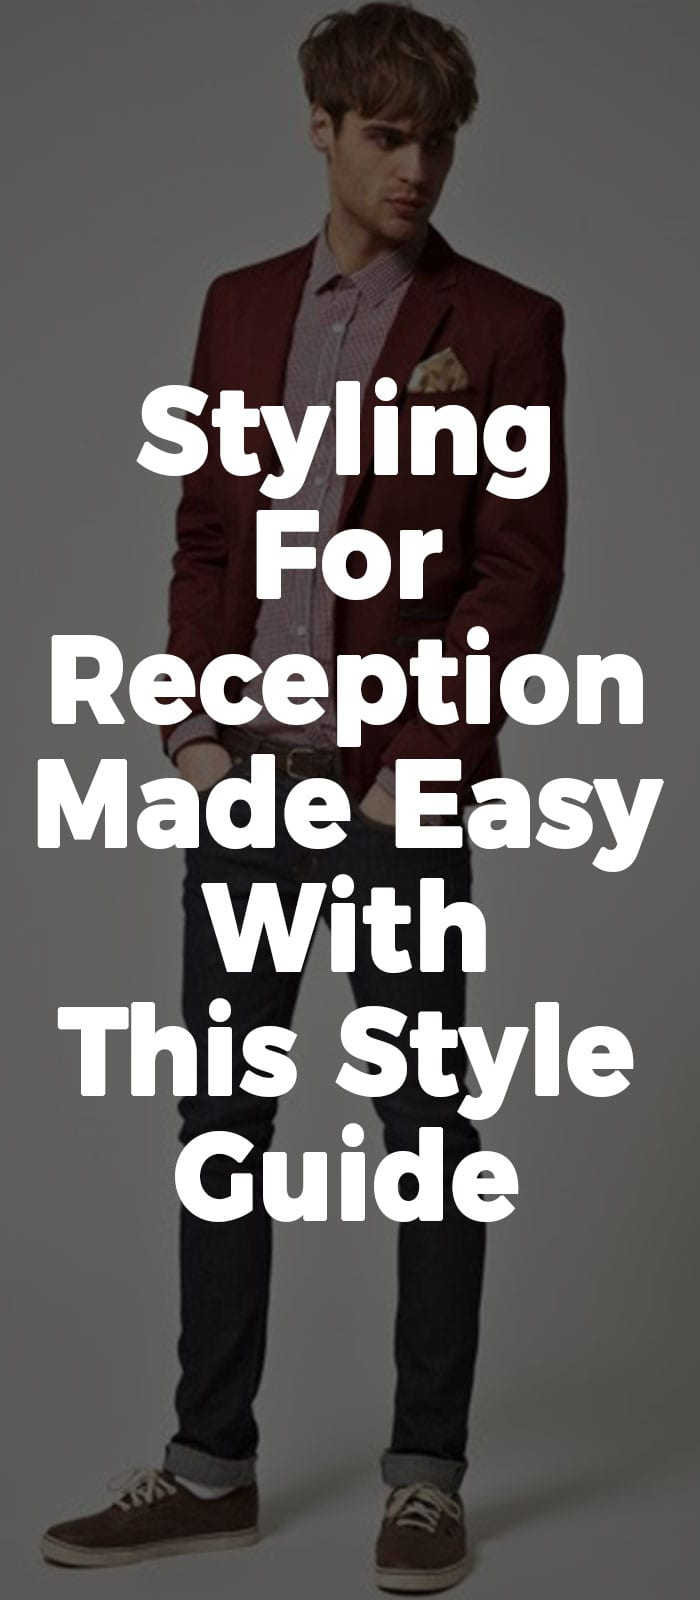 Styling For Reception Made Easy With This Style Guide